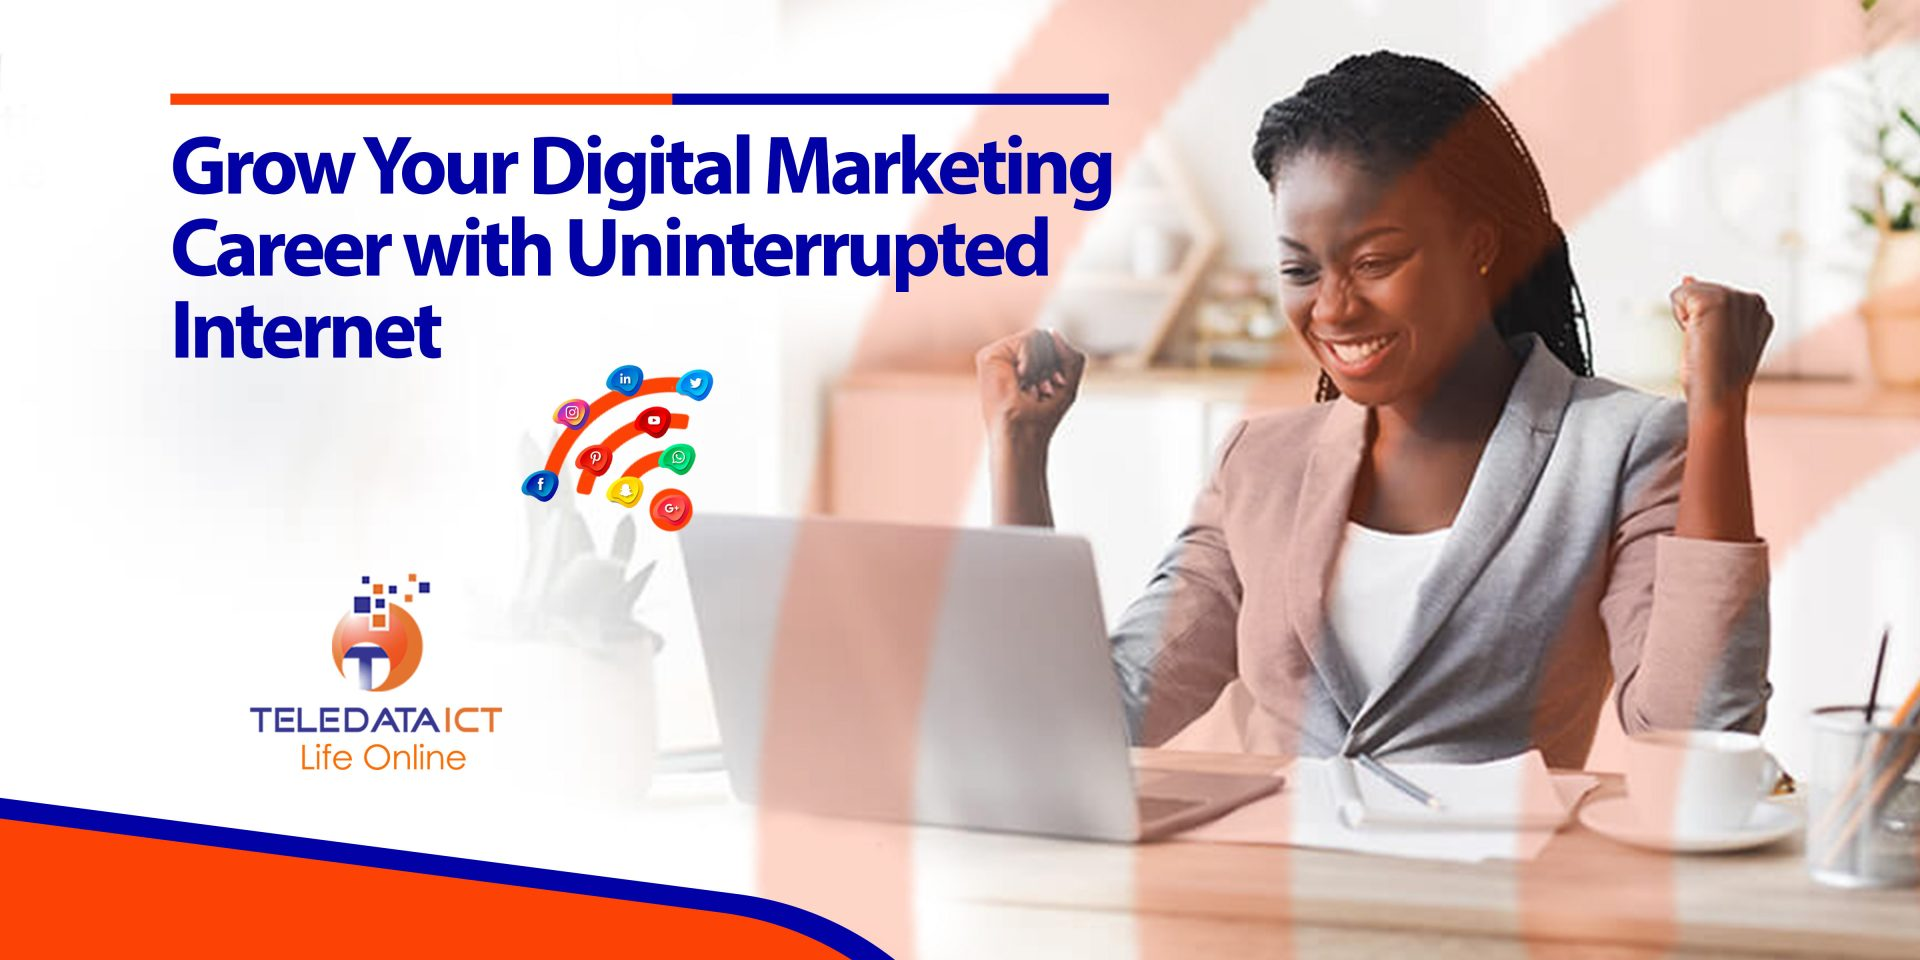 Benefit of unlimited internet for digital marketers